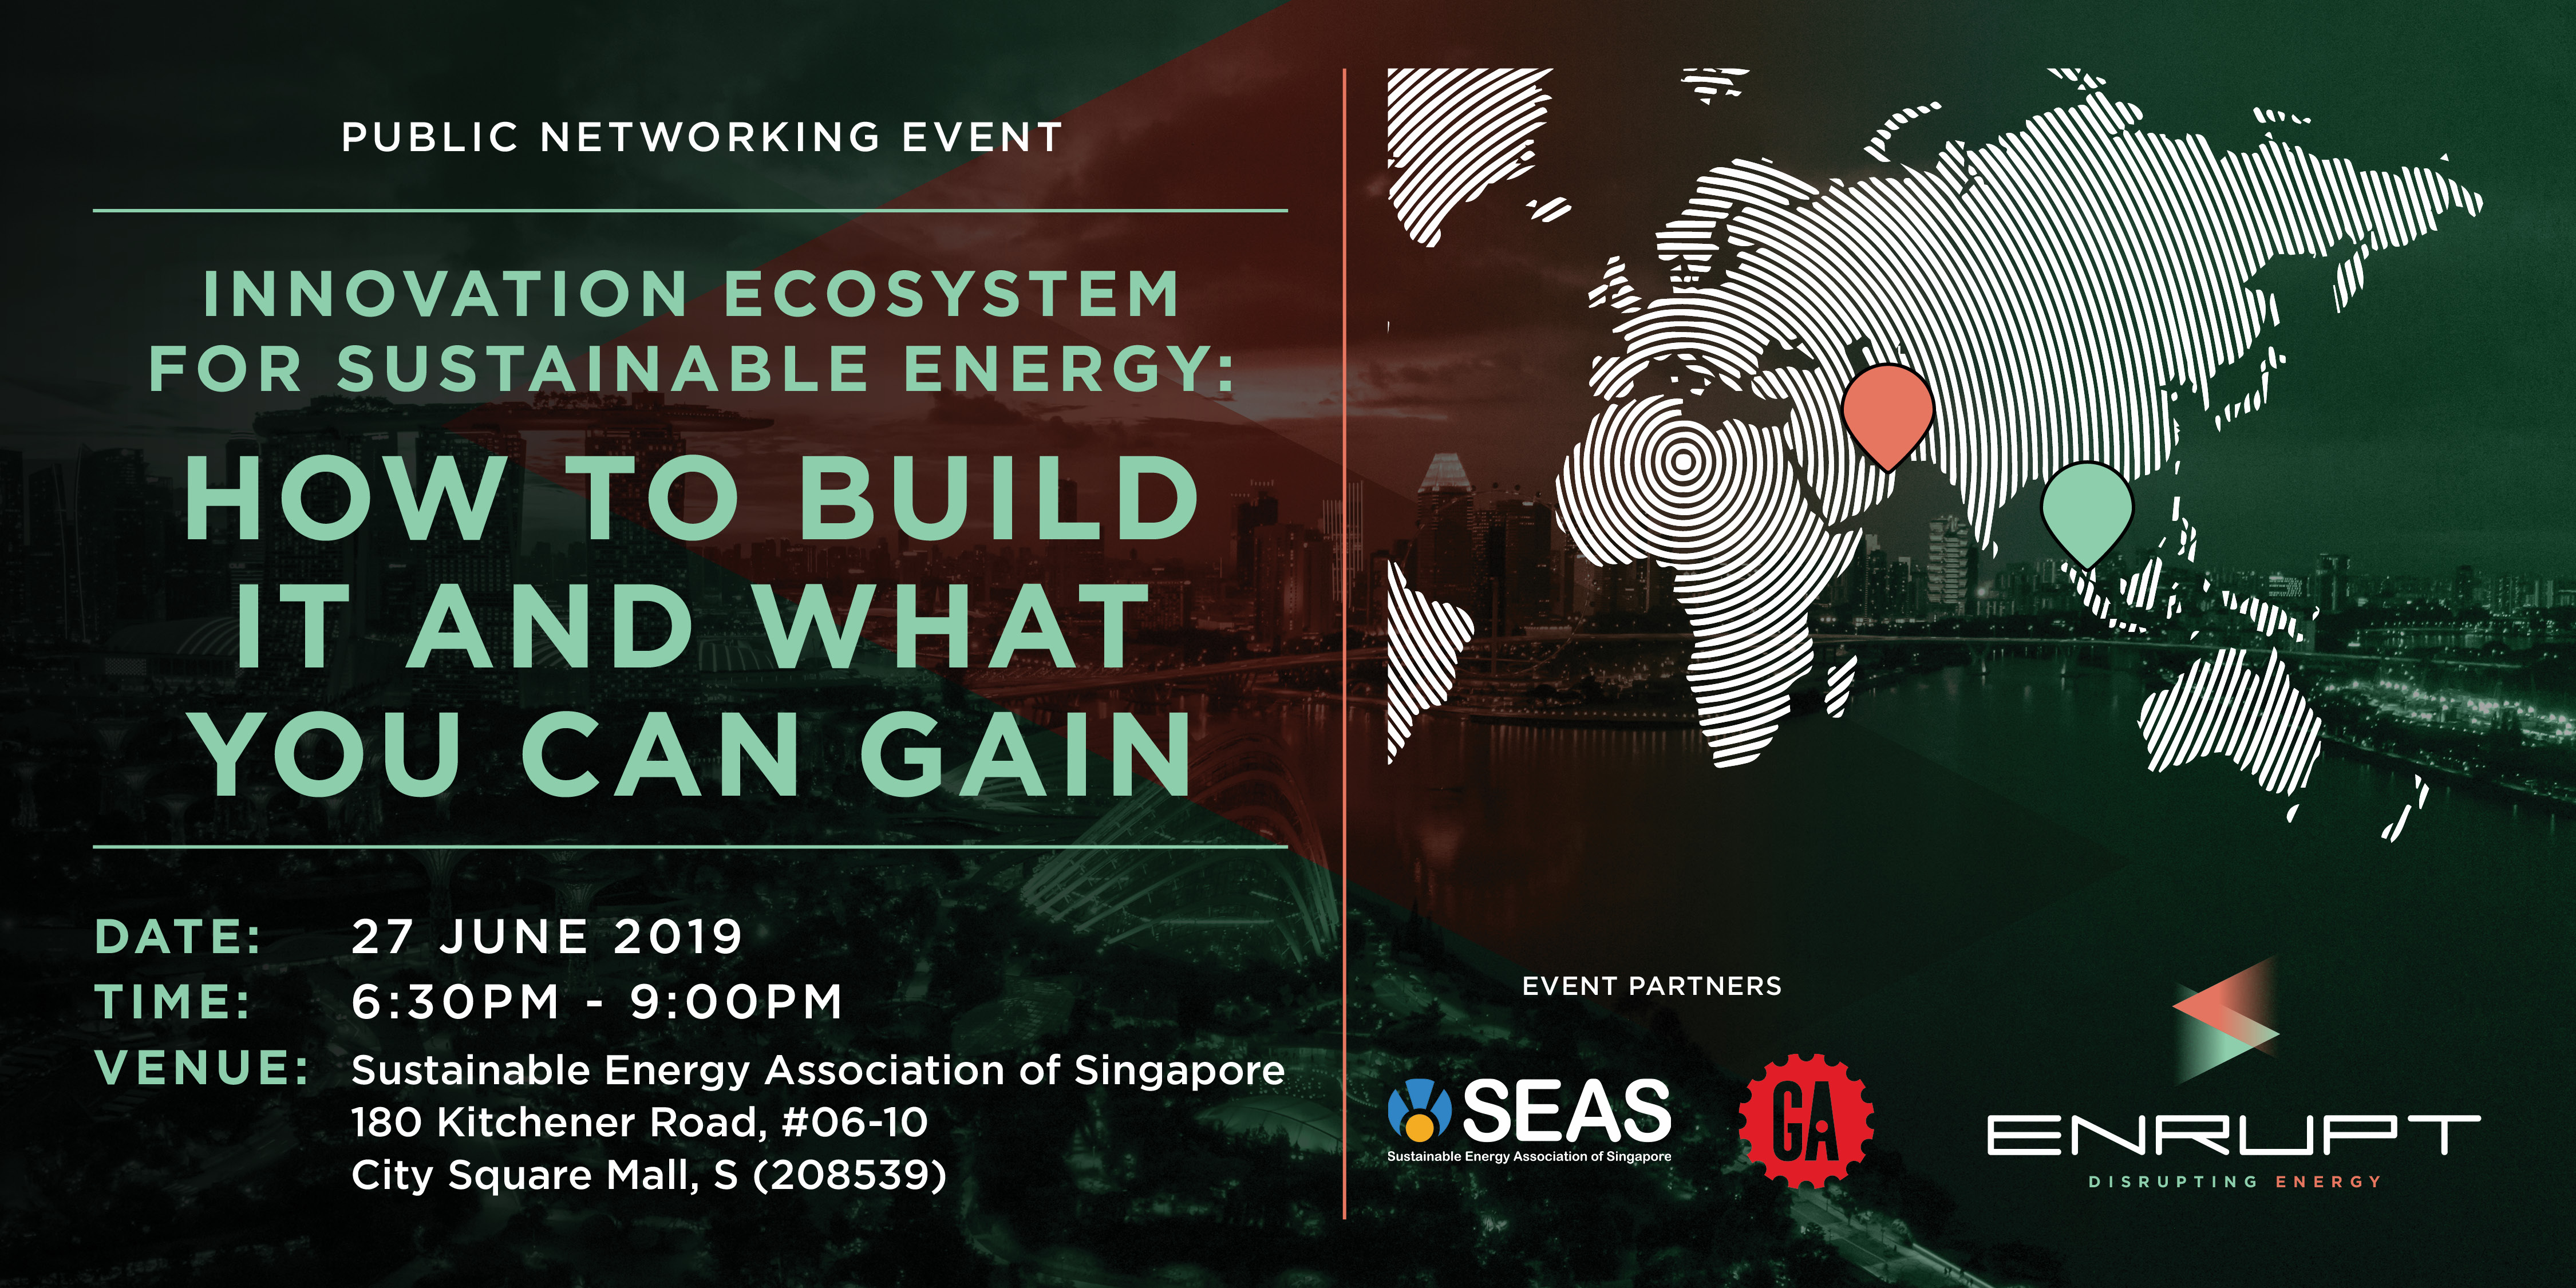 Innovation Ecosystem for Sustainable Energy: How to build it & what you can gain